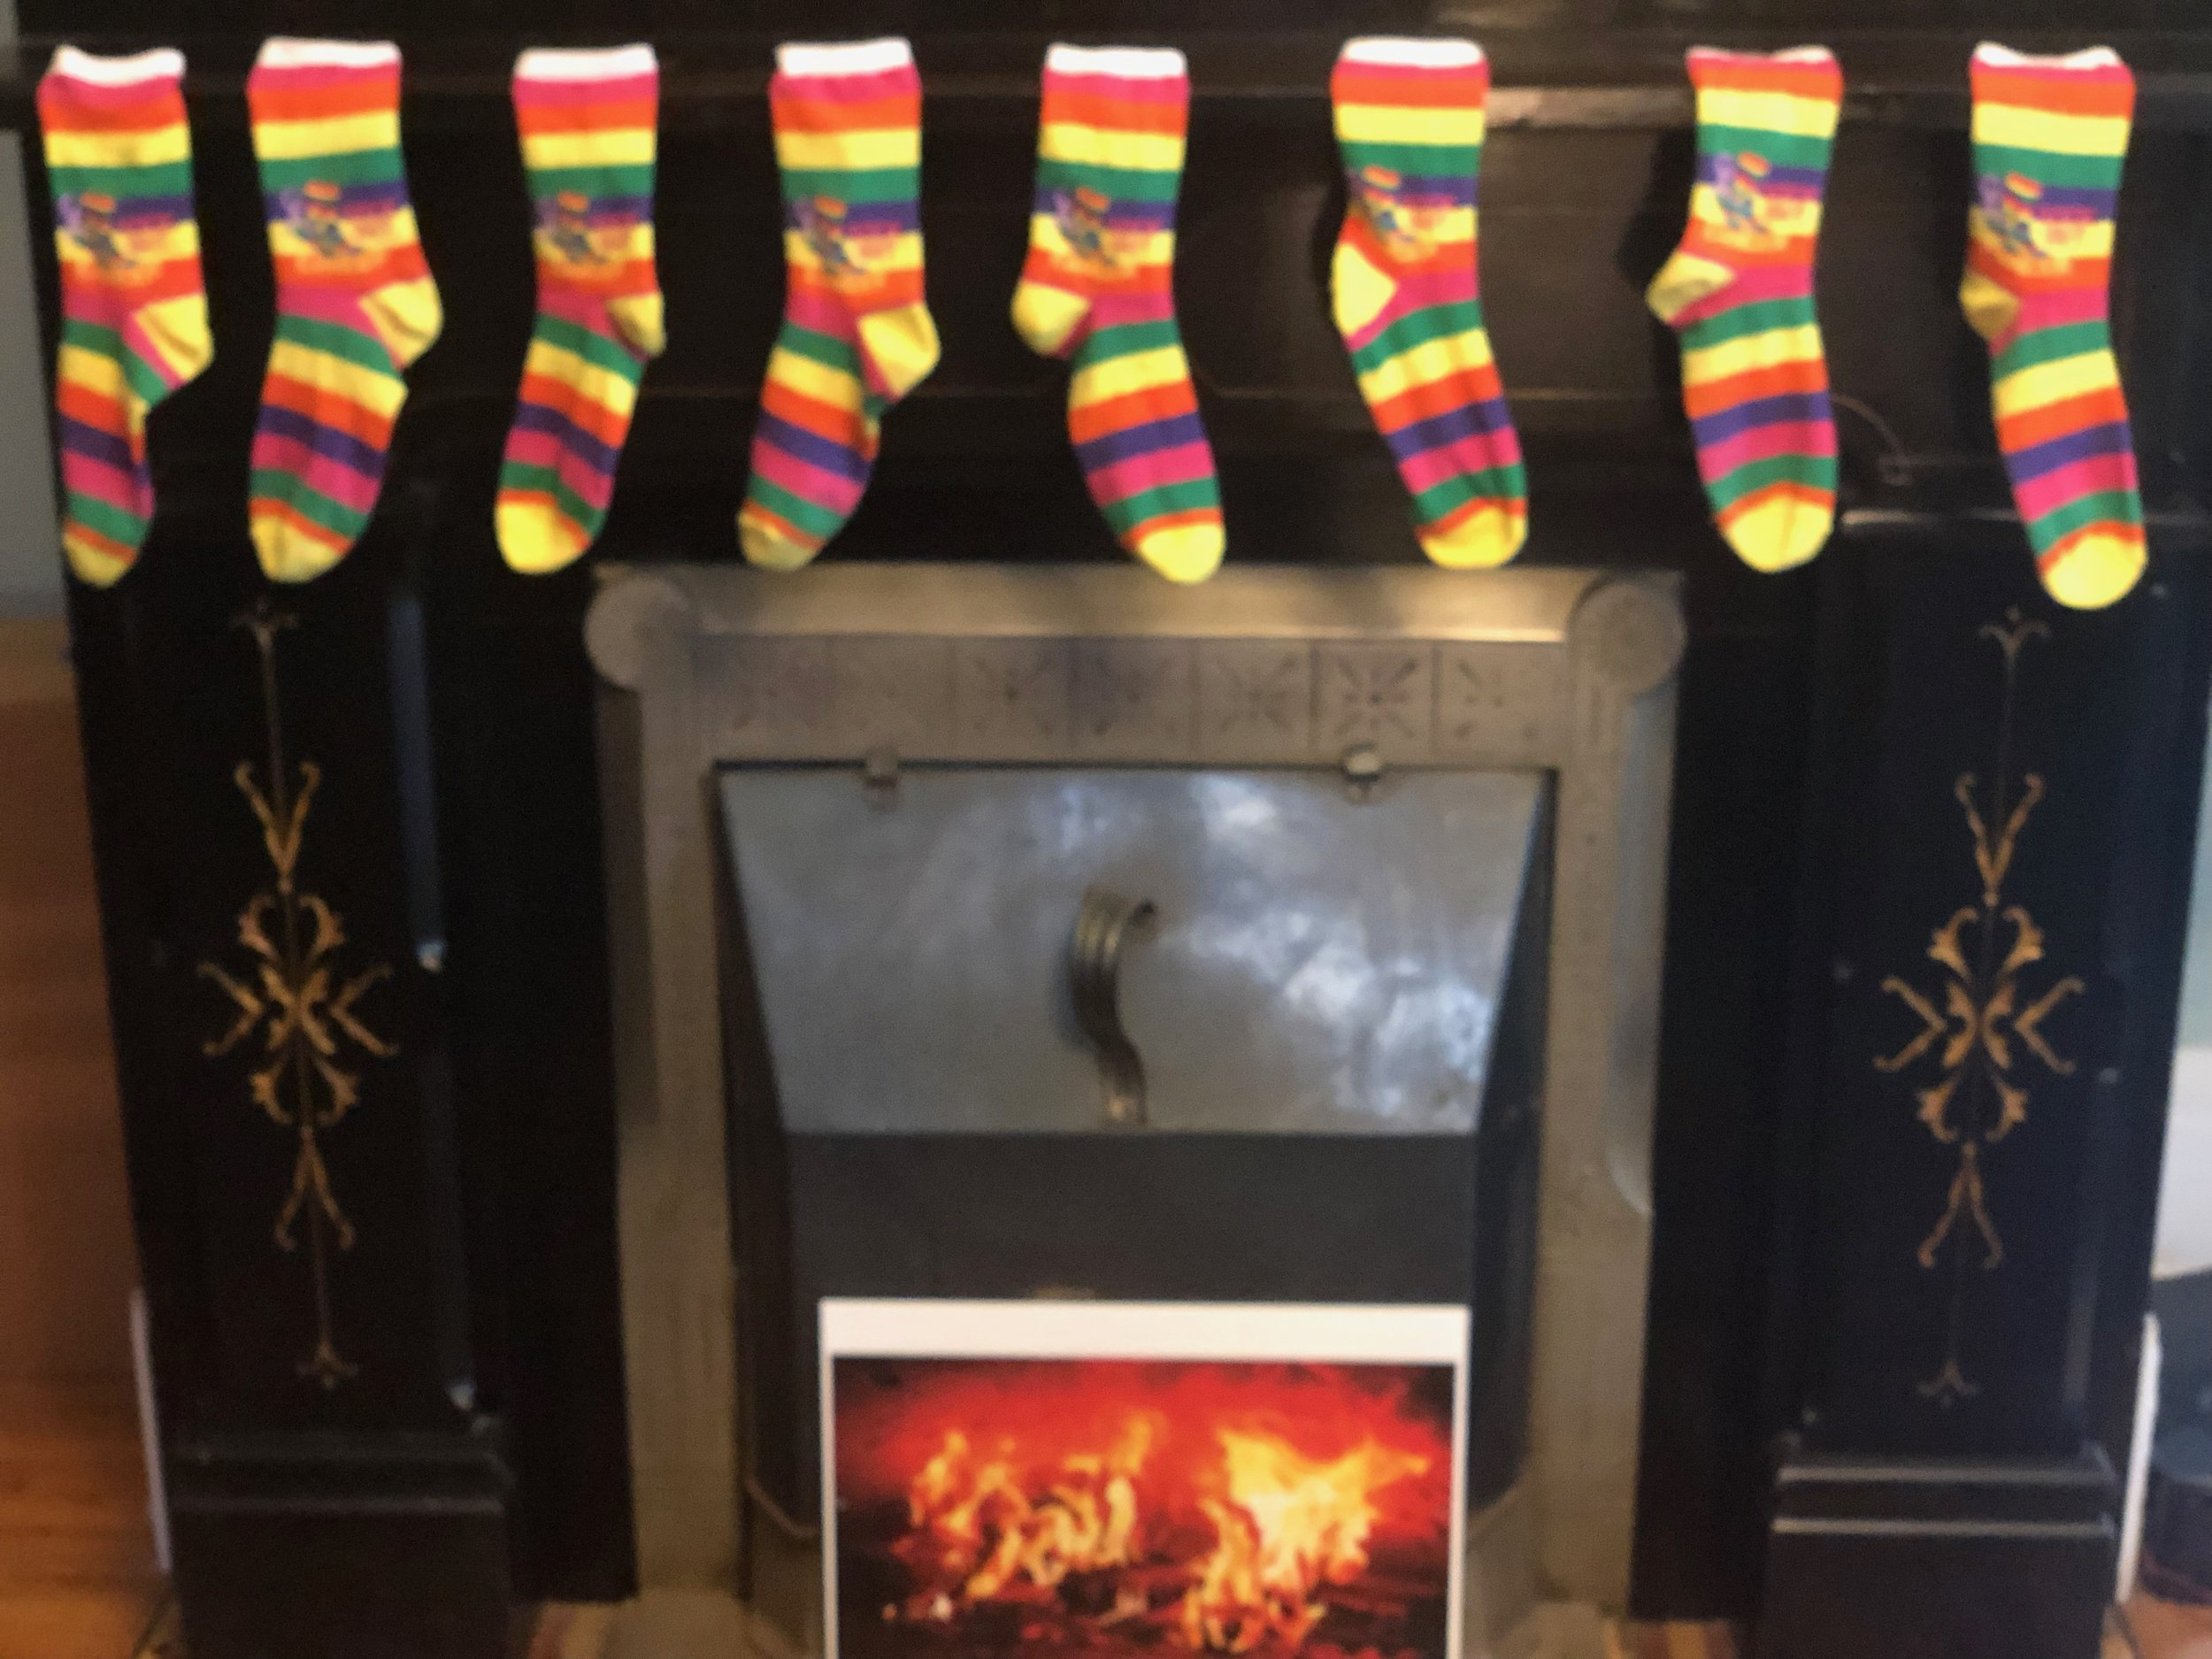 Sock Out Cancer Socks Hanging on Fireplace